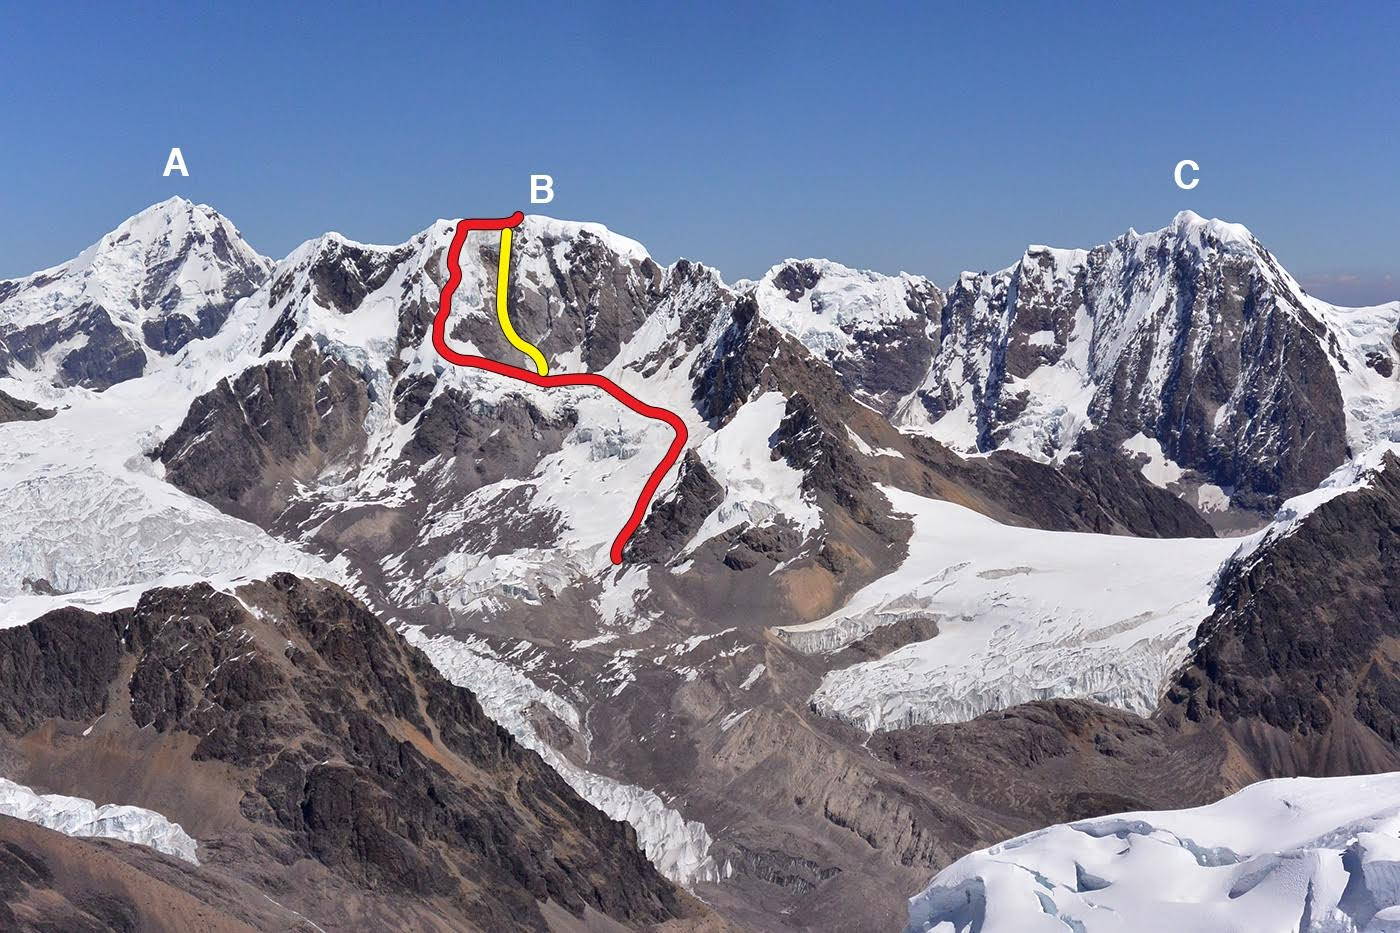 Nevado Jatunhuma and nearby peaks from the east: (A) Ausangante (6,348m). (B) Jatunhuma, showing the Field-Heald route (2016, red line) and the approximate Yugoslavian Route (Kolar-Mihev-Radovic-Zagar, 1980, yellow line). (C) Callangate (a.k.a. Cayangate, 6,110m).